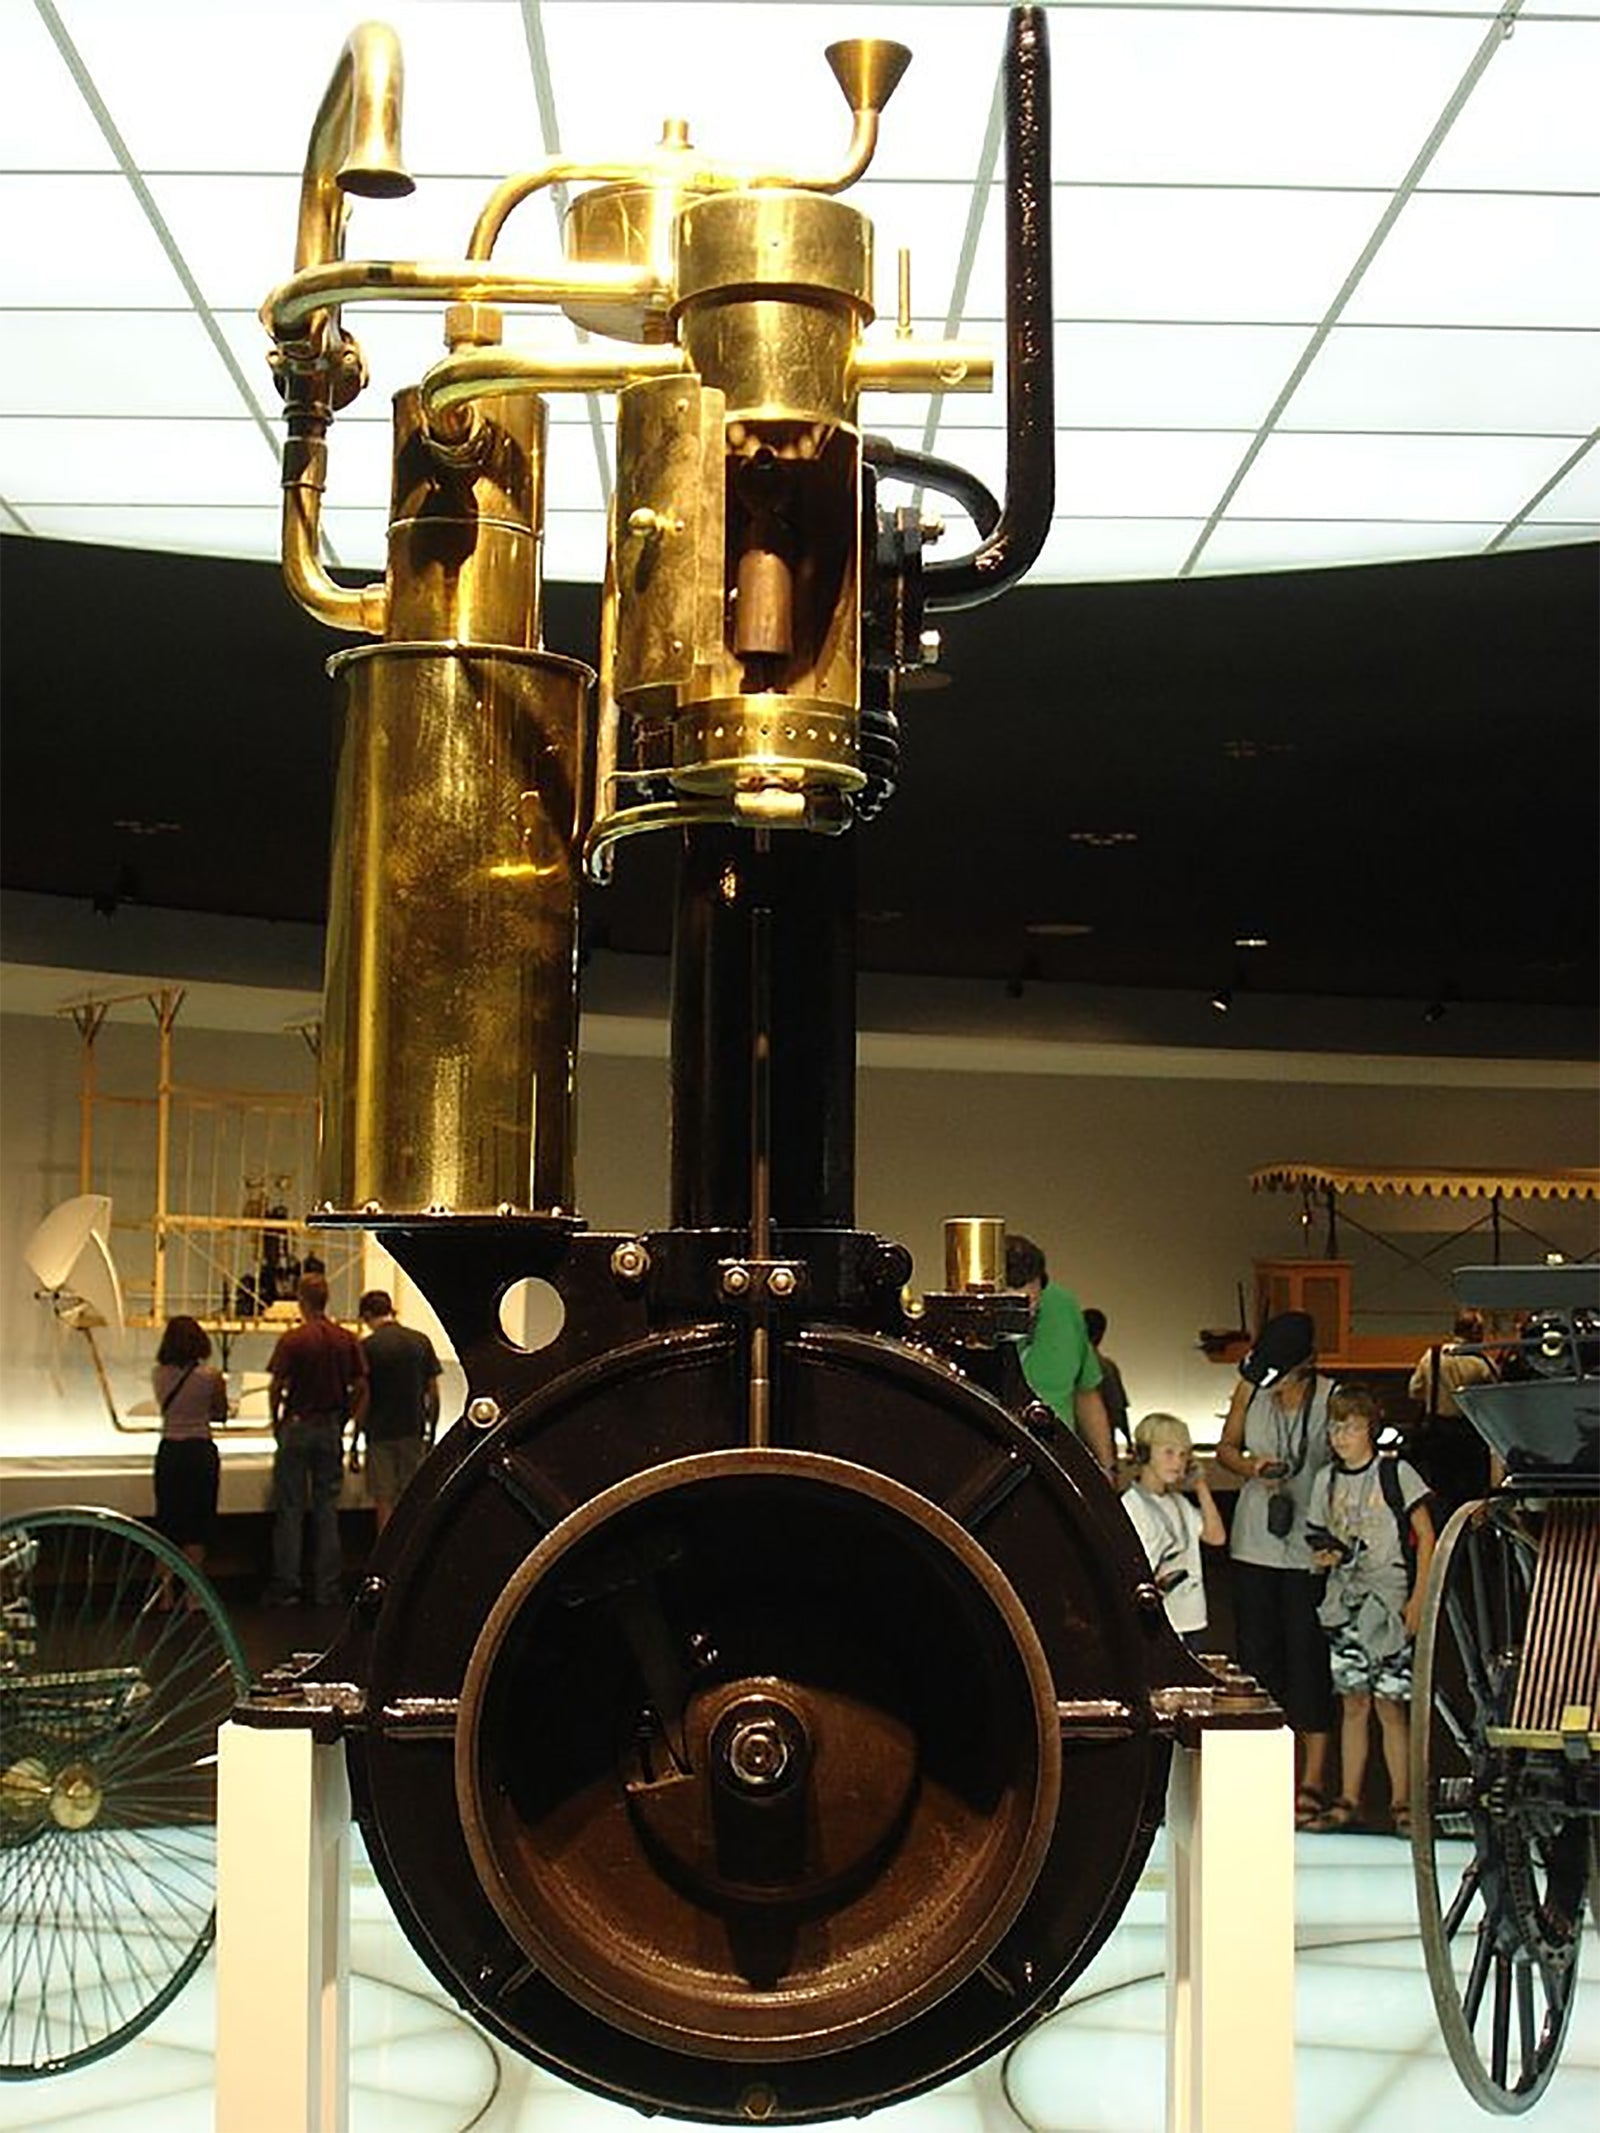 The clock engine of 1886